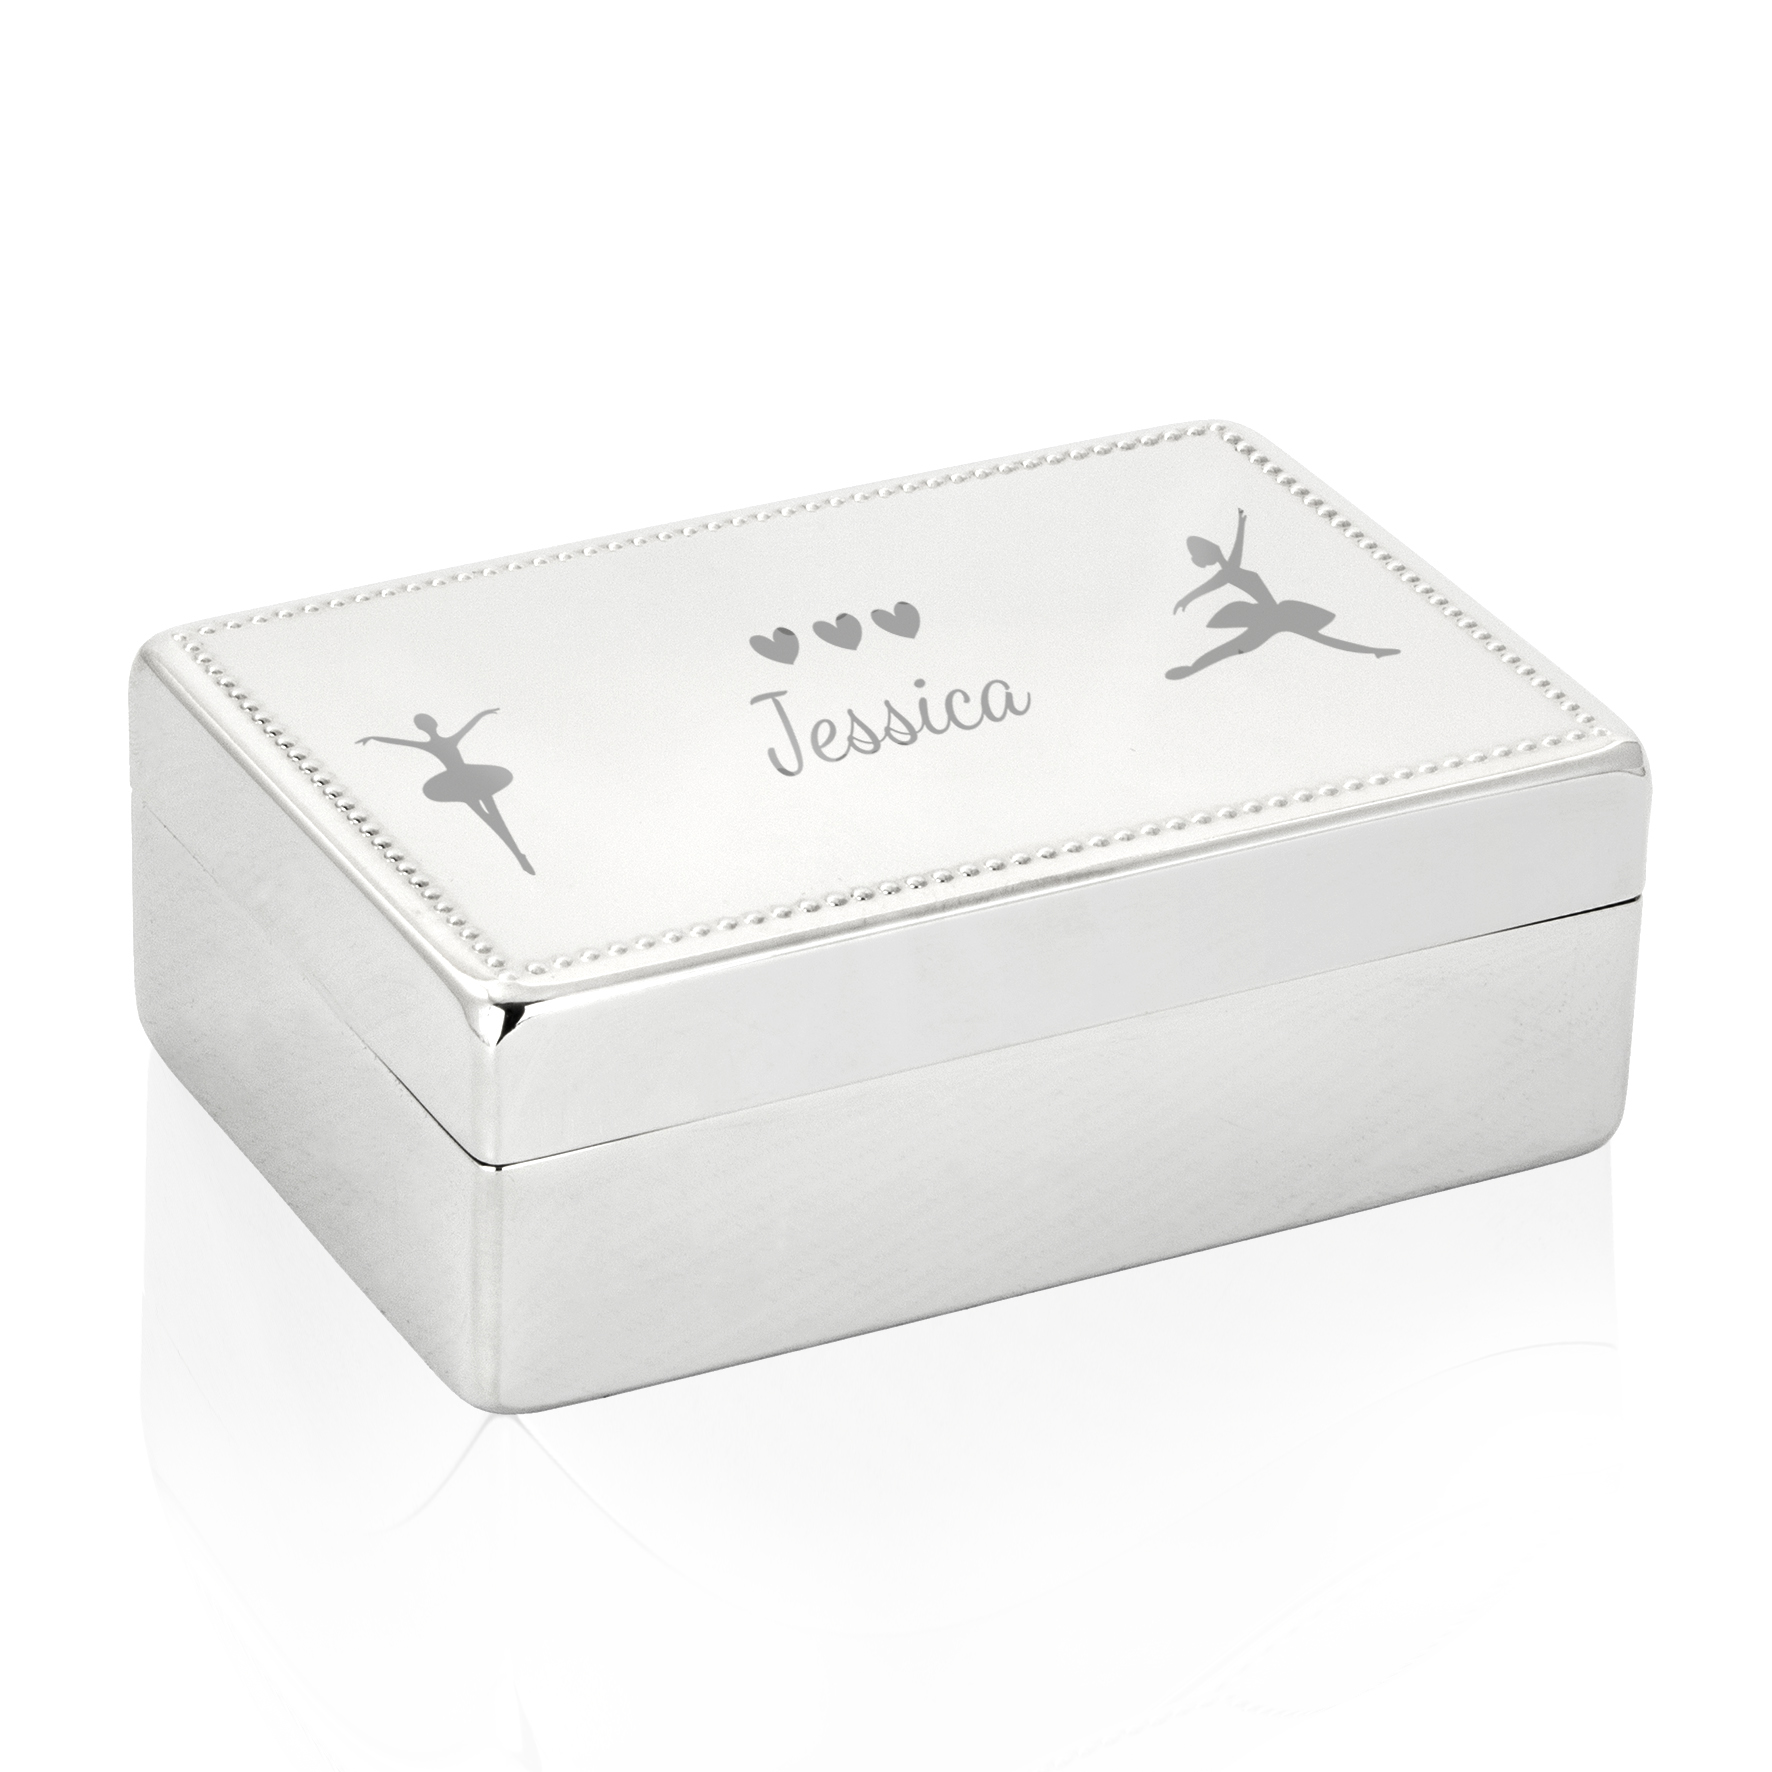 Engraved Ballerina Rectangle Jewellery Box